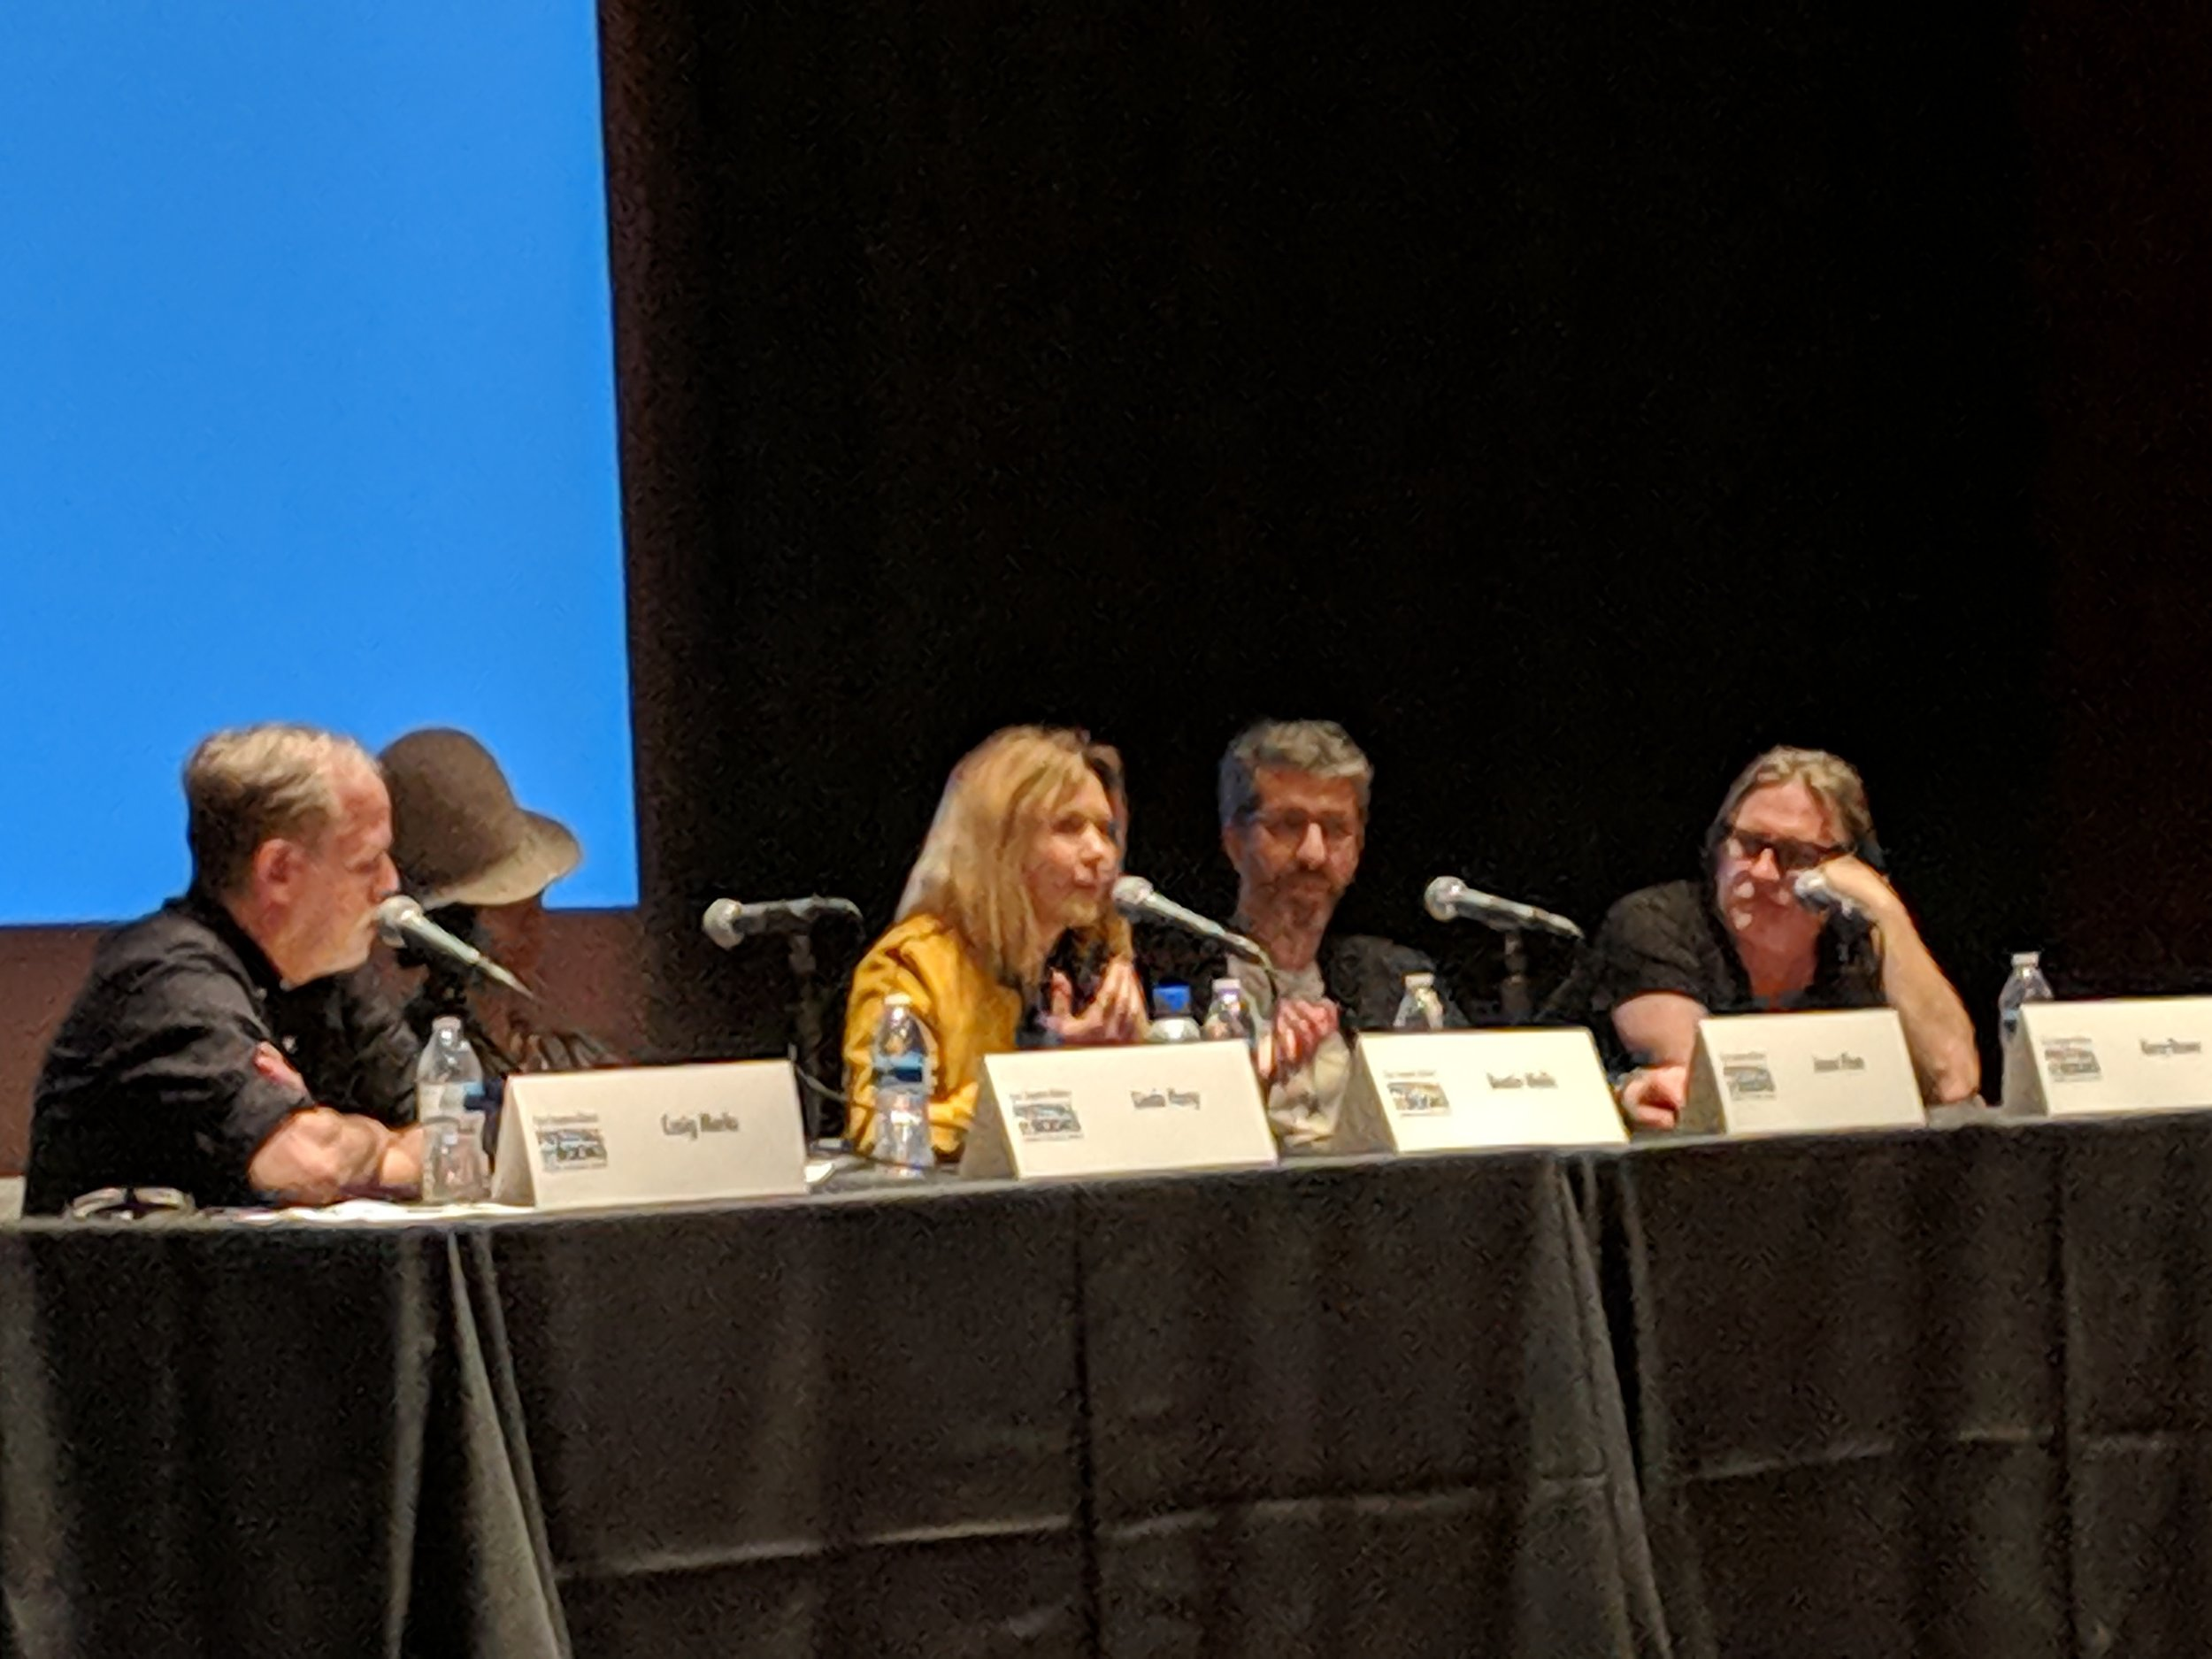 Beatie Wolfe sharing a thought with Jason Flom, Kerry Brown, Linda Perry and Craig marks